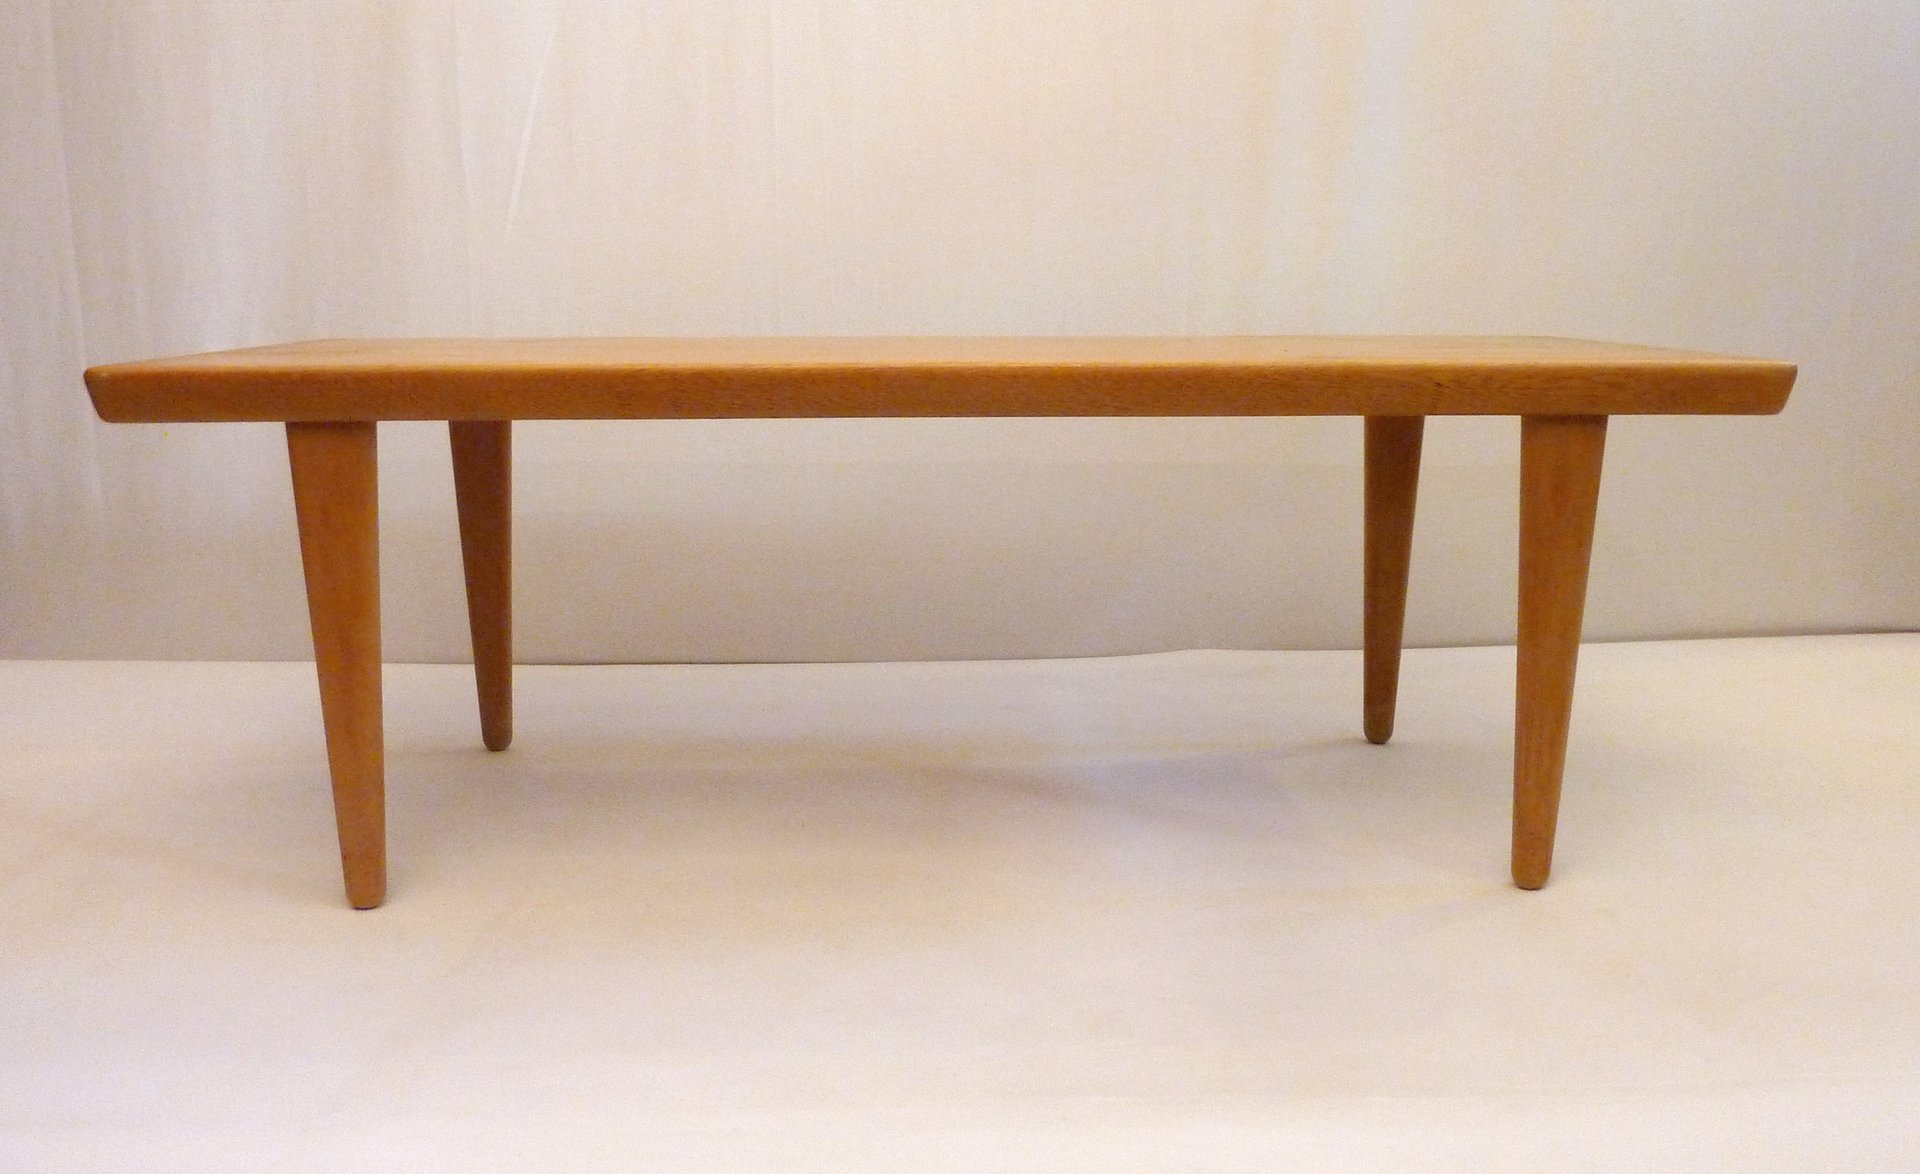 Wonderful image of Oak Coffee Table from Seffle Möbelfabrik Sweden for sale at Pamono with #814112 color and 1920x1174 pixels